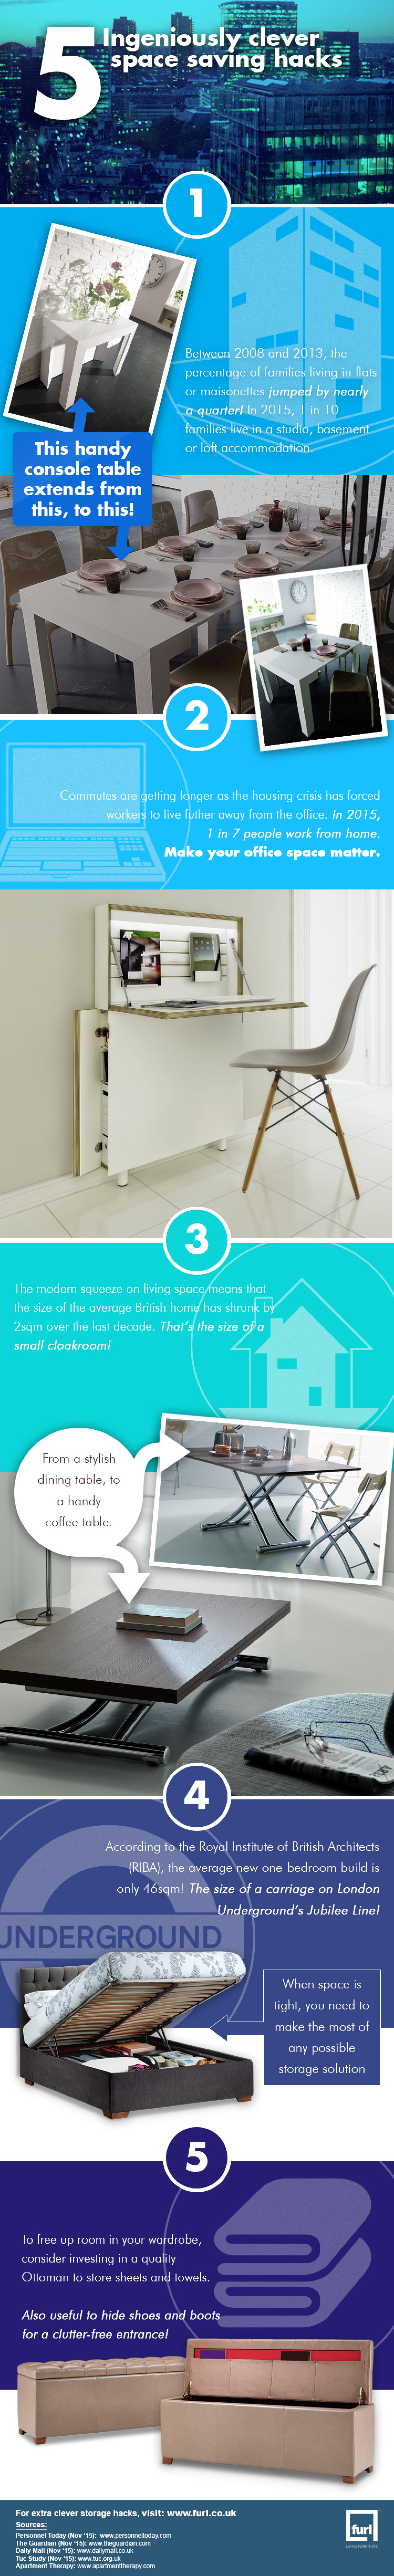 5 Clever Space Saving Hacks Infographic